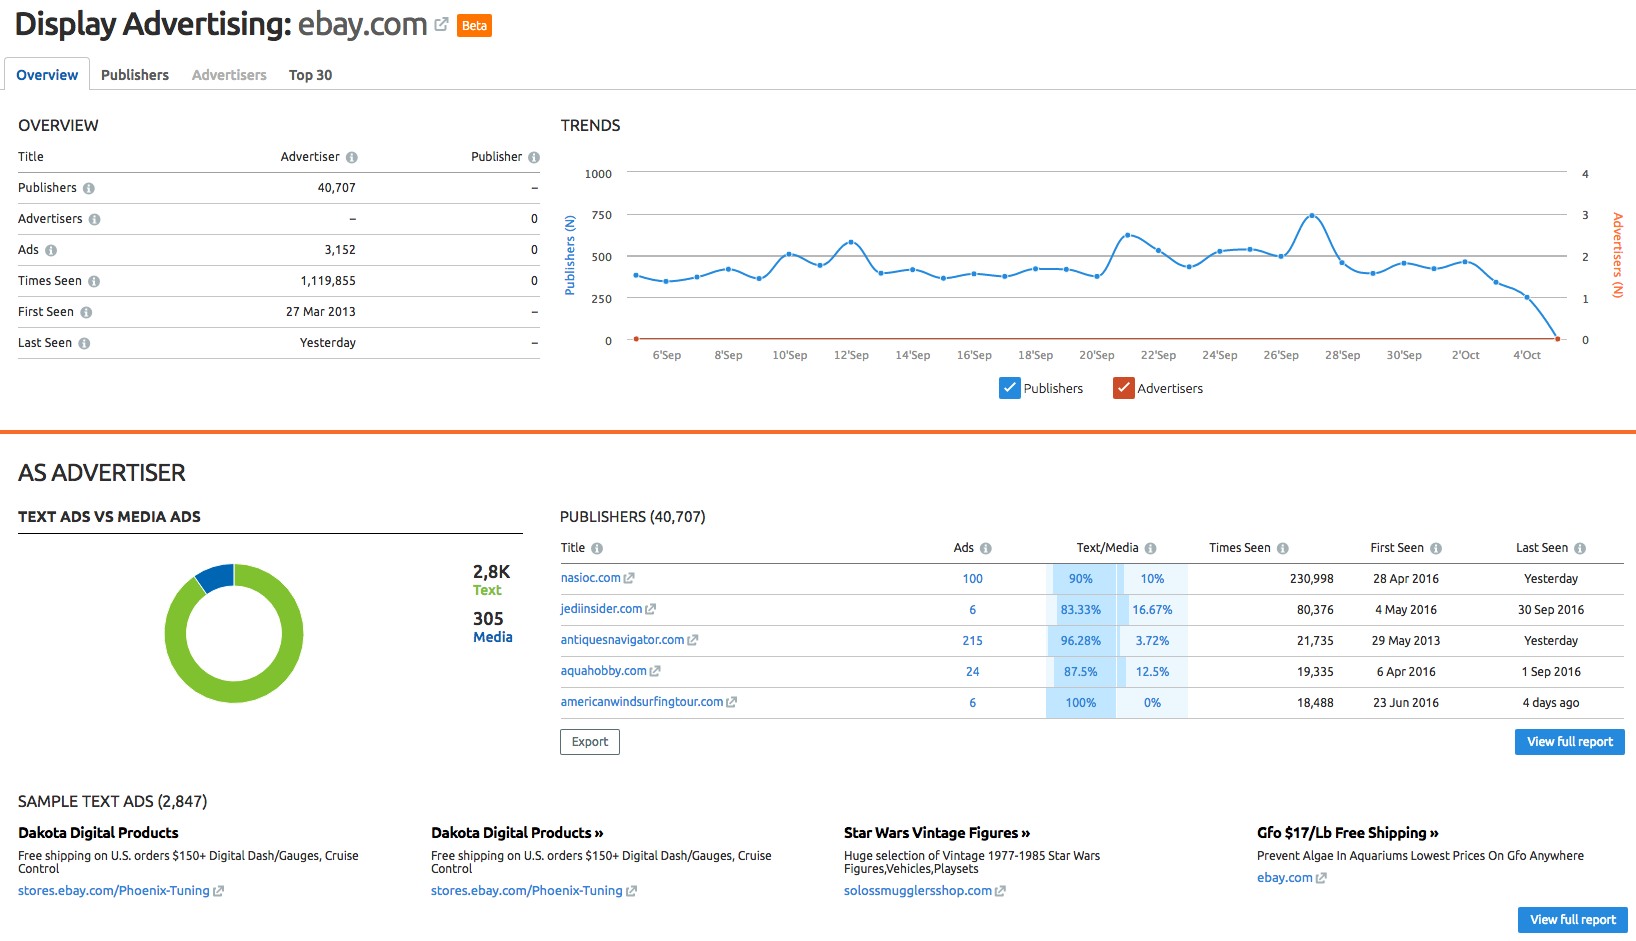 SEMrush: Display Advertising Is Getting a Second Wind image 2